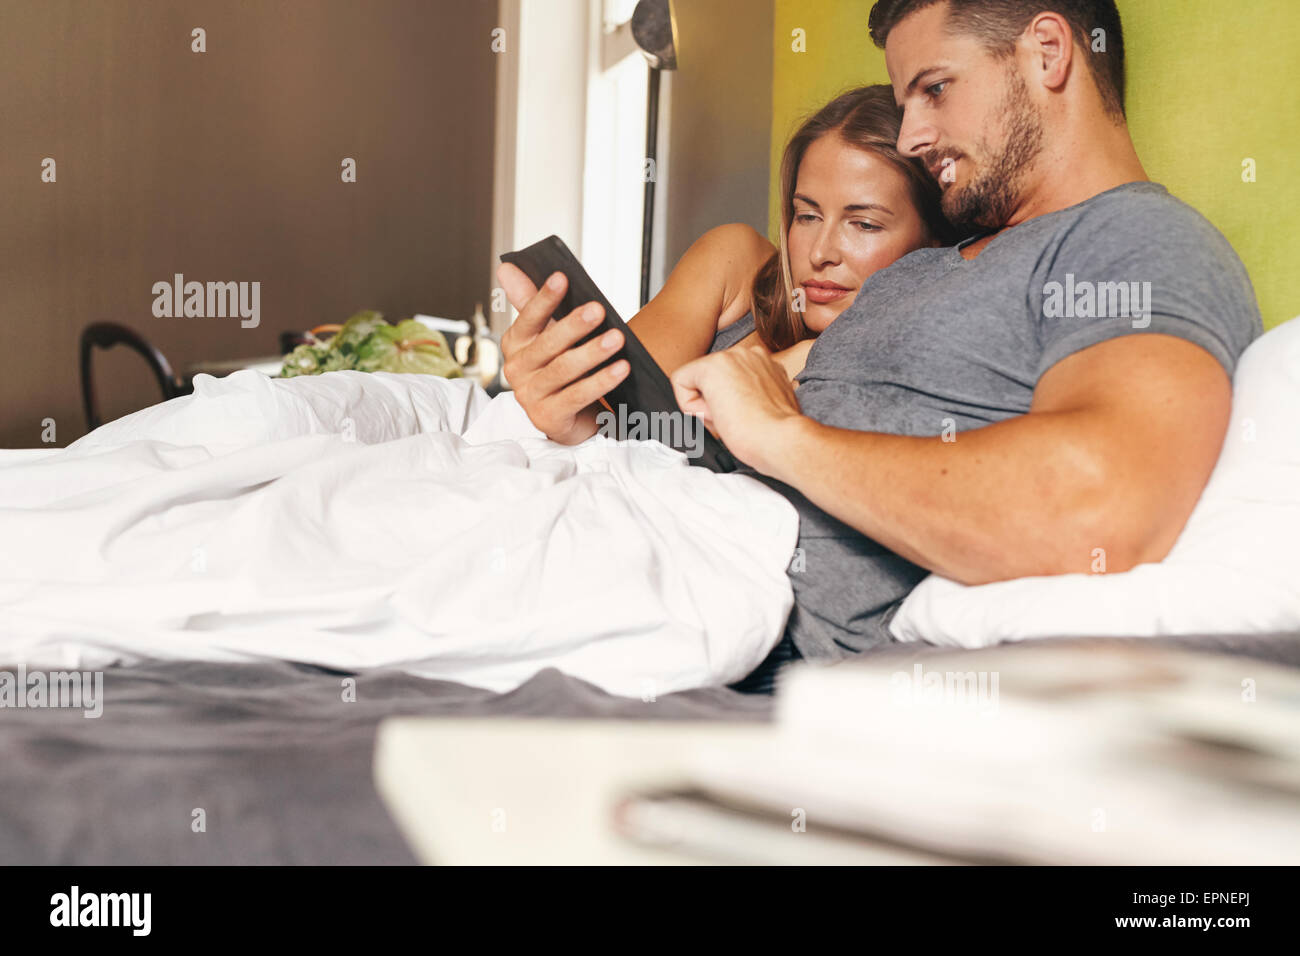 Shot of a young couple lying in bed and using a digital tablet together in morning - Stock Image